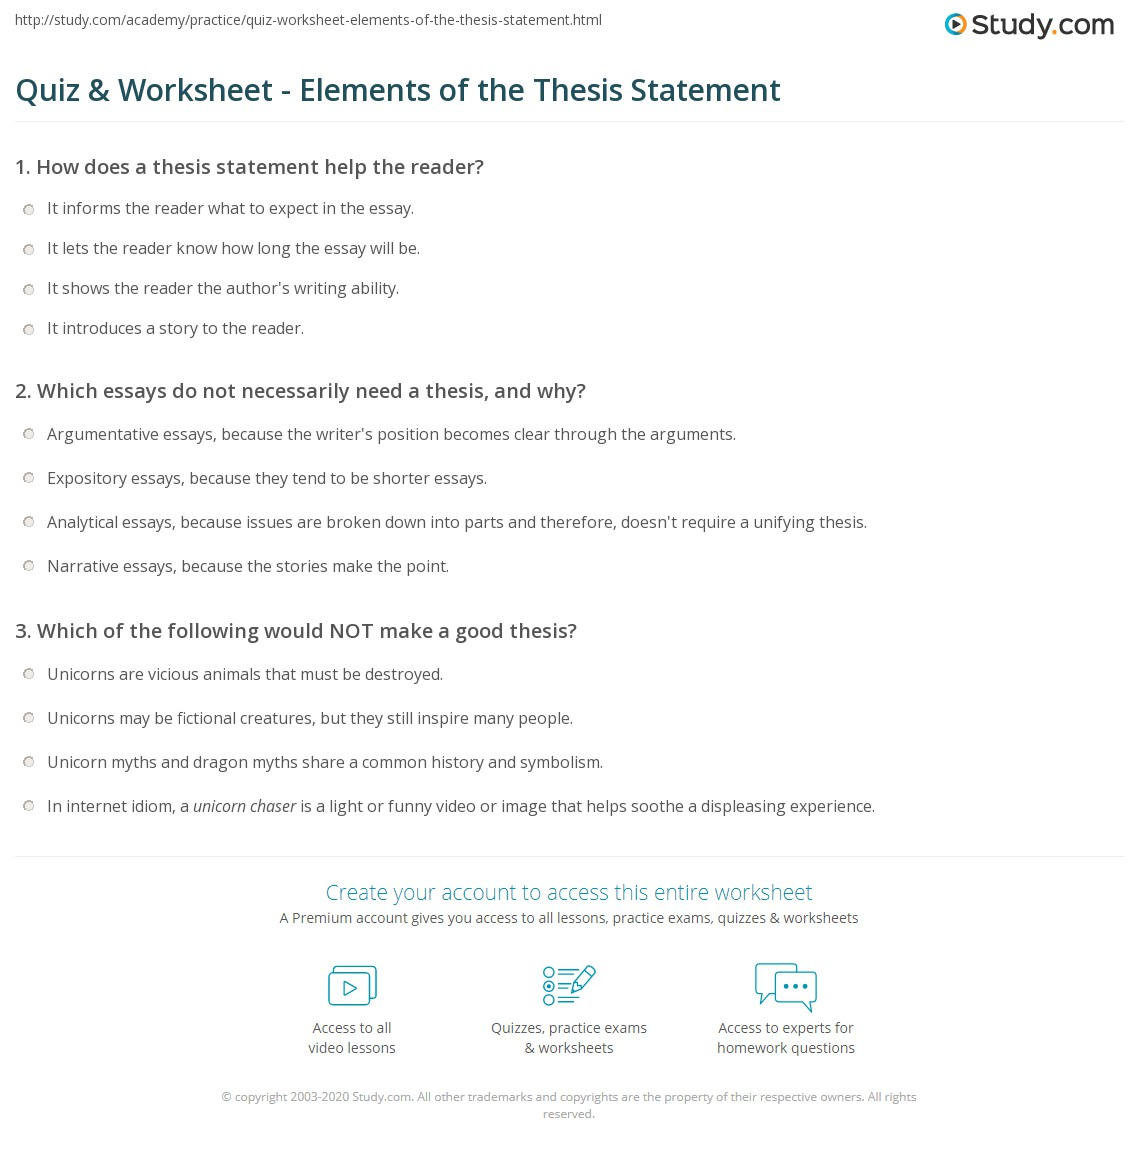 Quiz & Worksheet - Elements of the Thesis Statement | Study.com